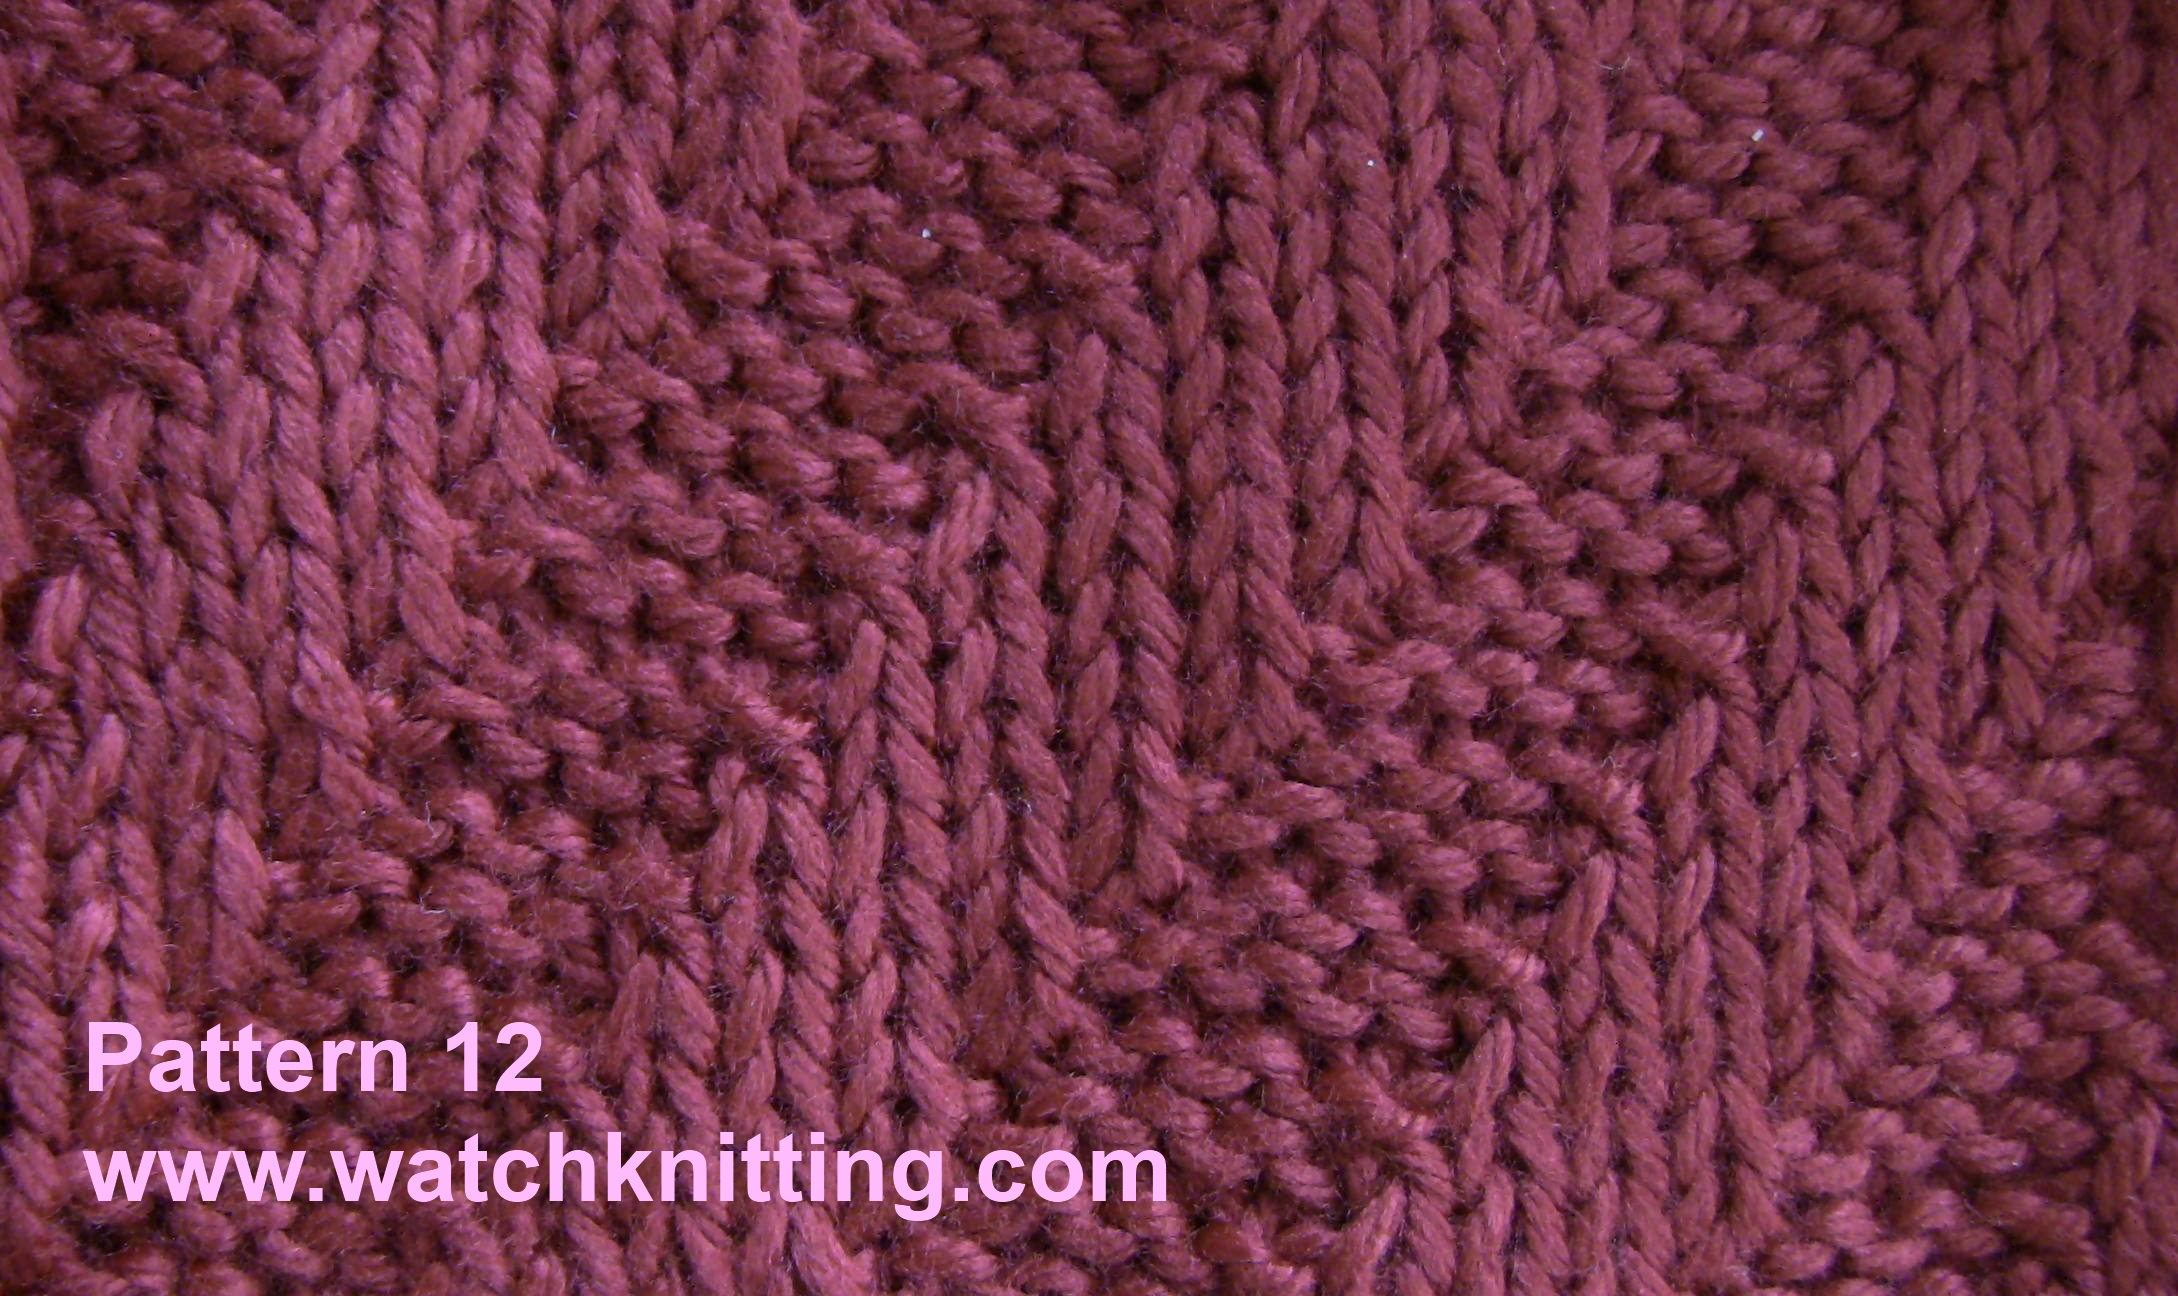 Knitting Pictures Stitches : Basic knitting stitches watch